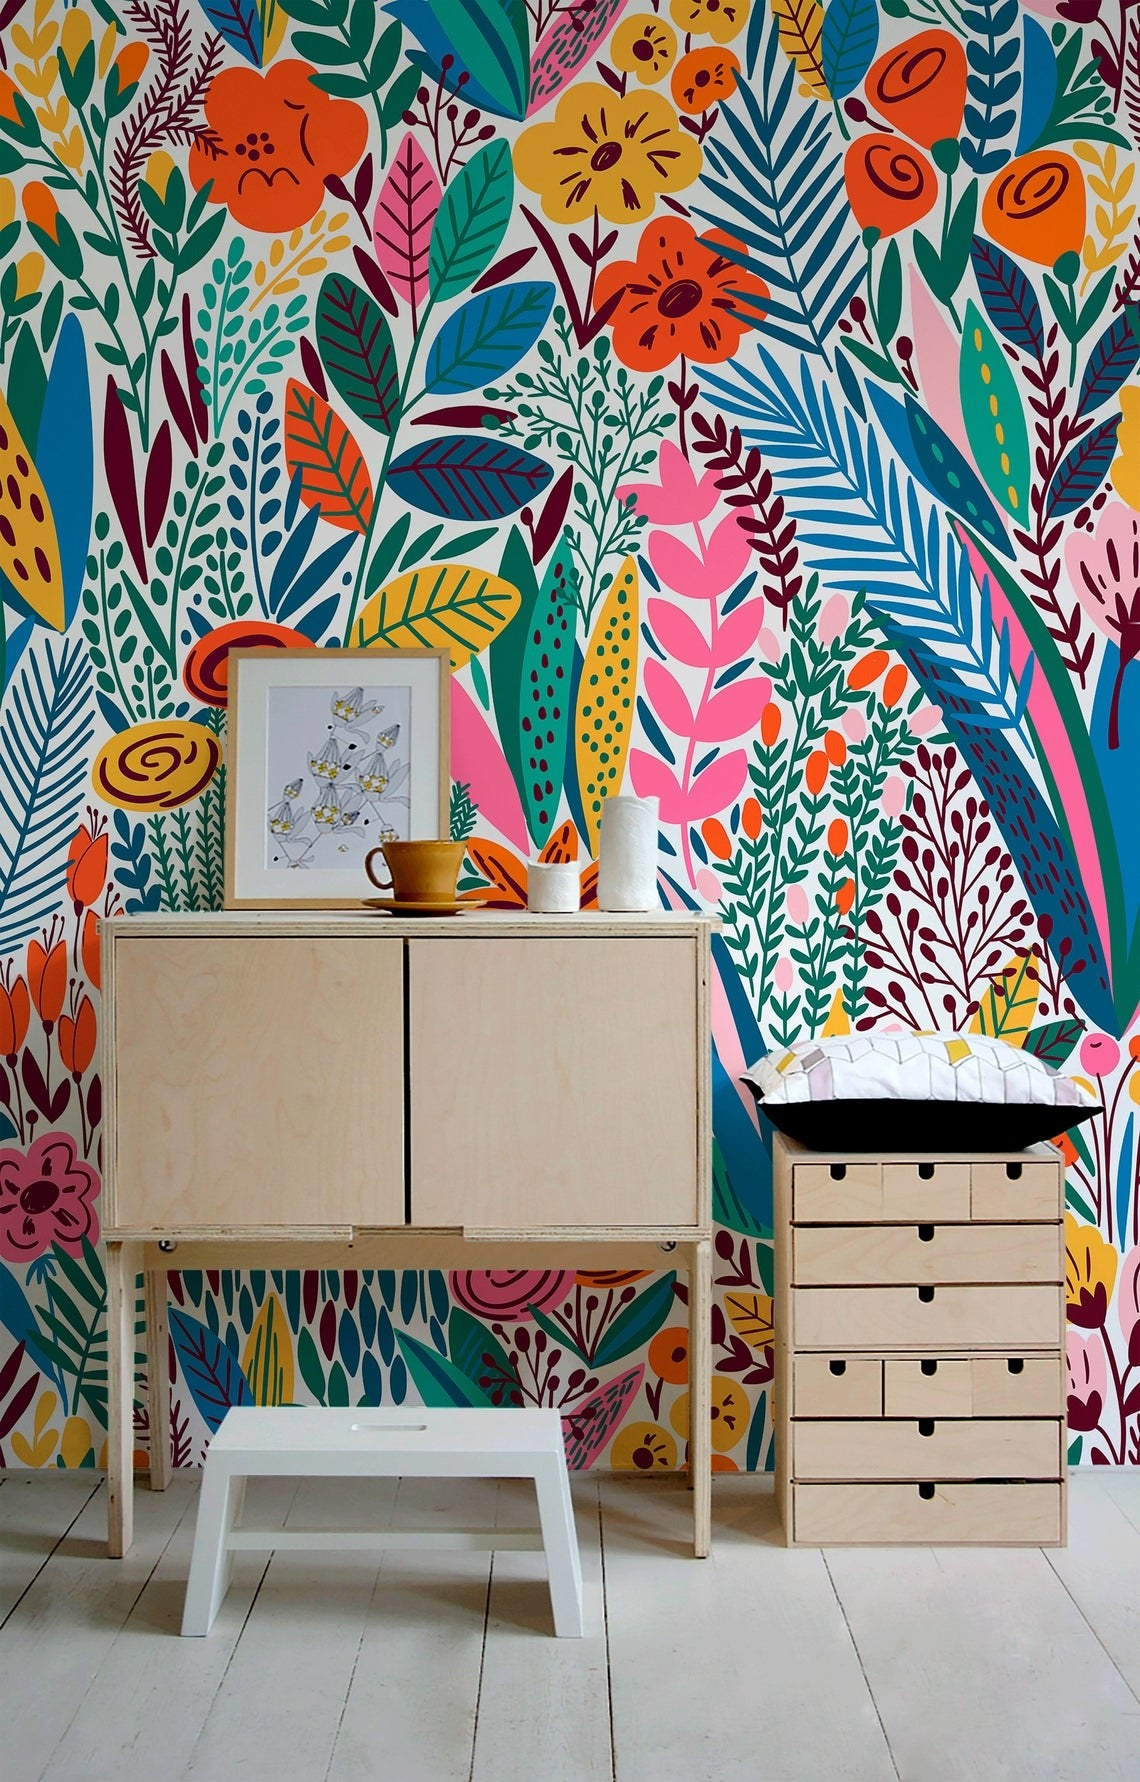 The wallpaper installed on an office wall